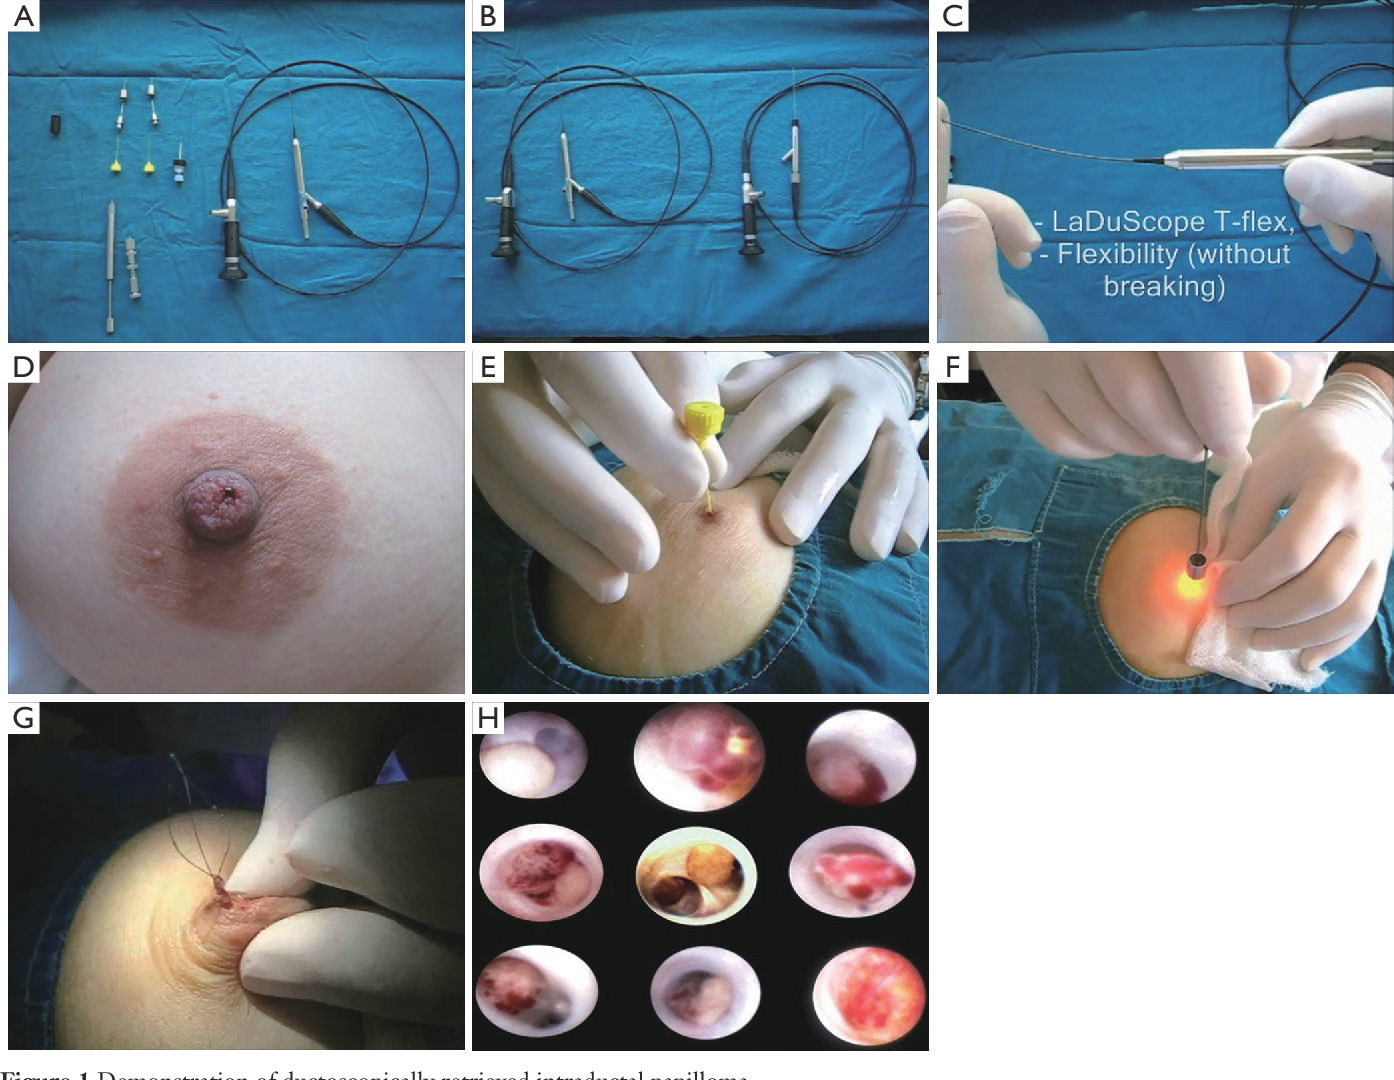 intraductal papilloma left untreated prescription cream for hpv warts